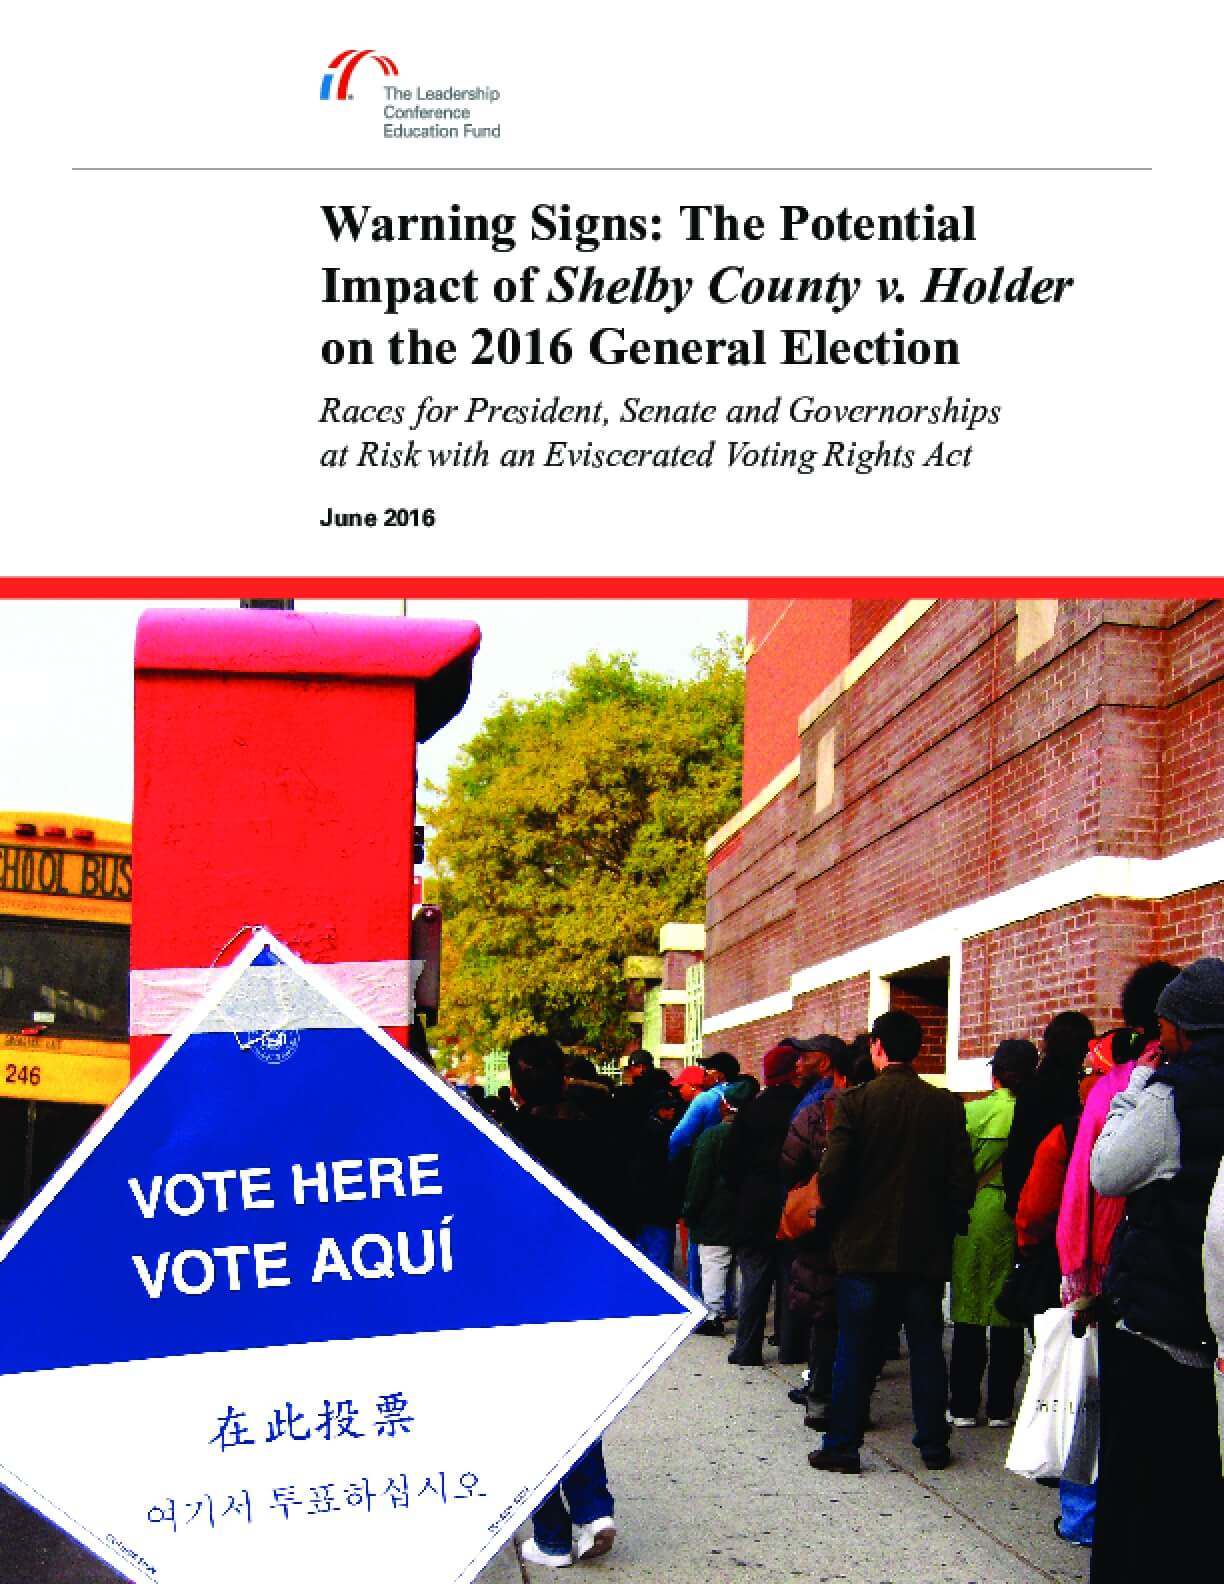 Warning Signs: The Potential Impact of Shelby County v. Holder on the 2016 General Election